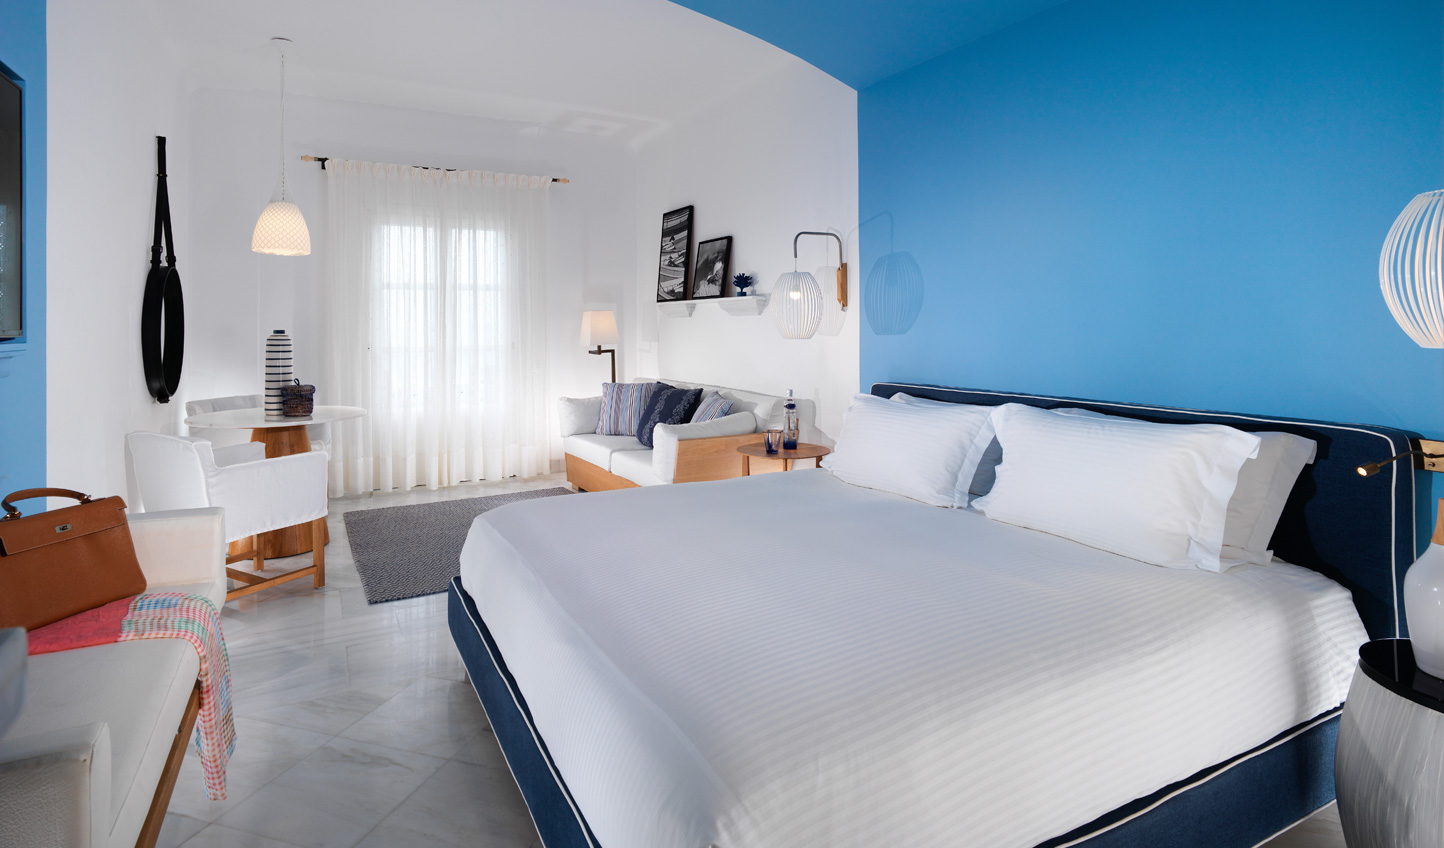 Sleep in style at the Mykonos Grand